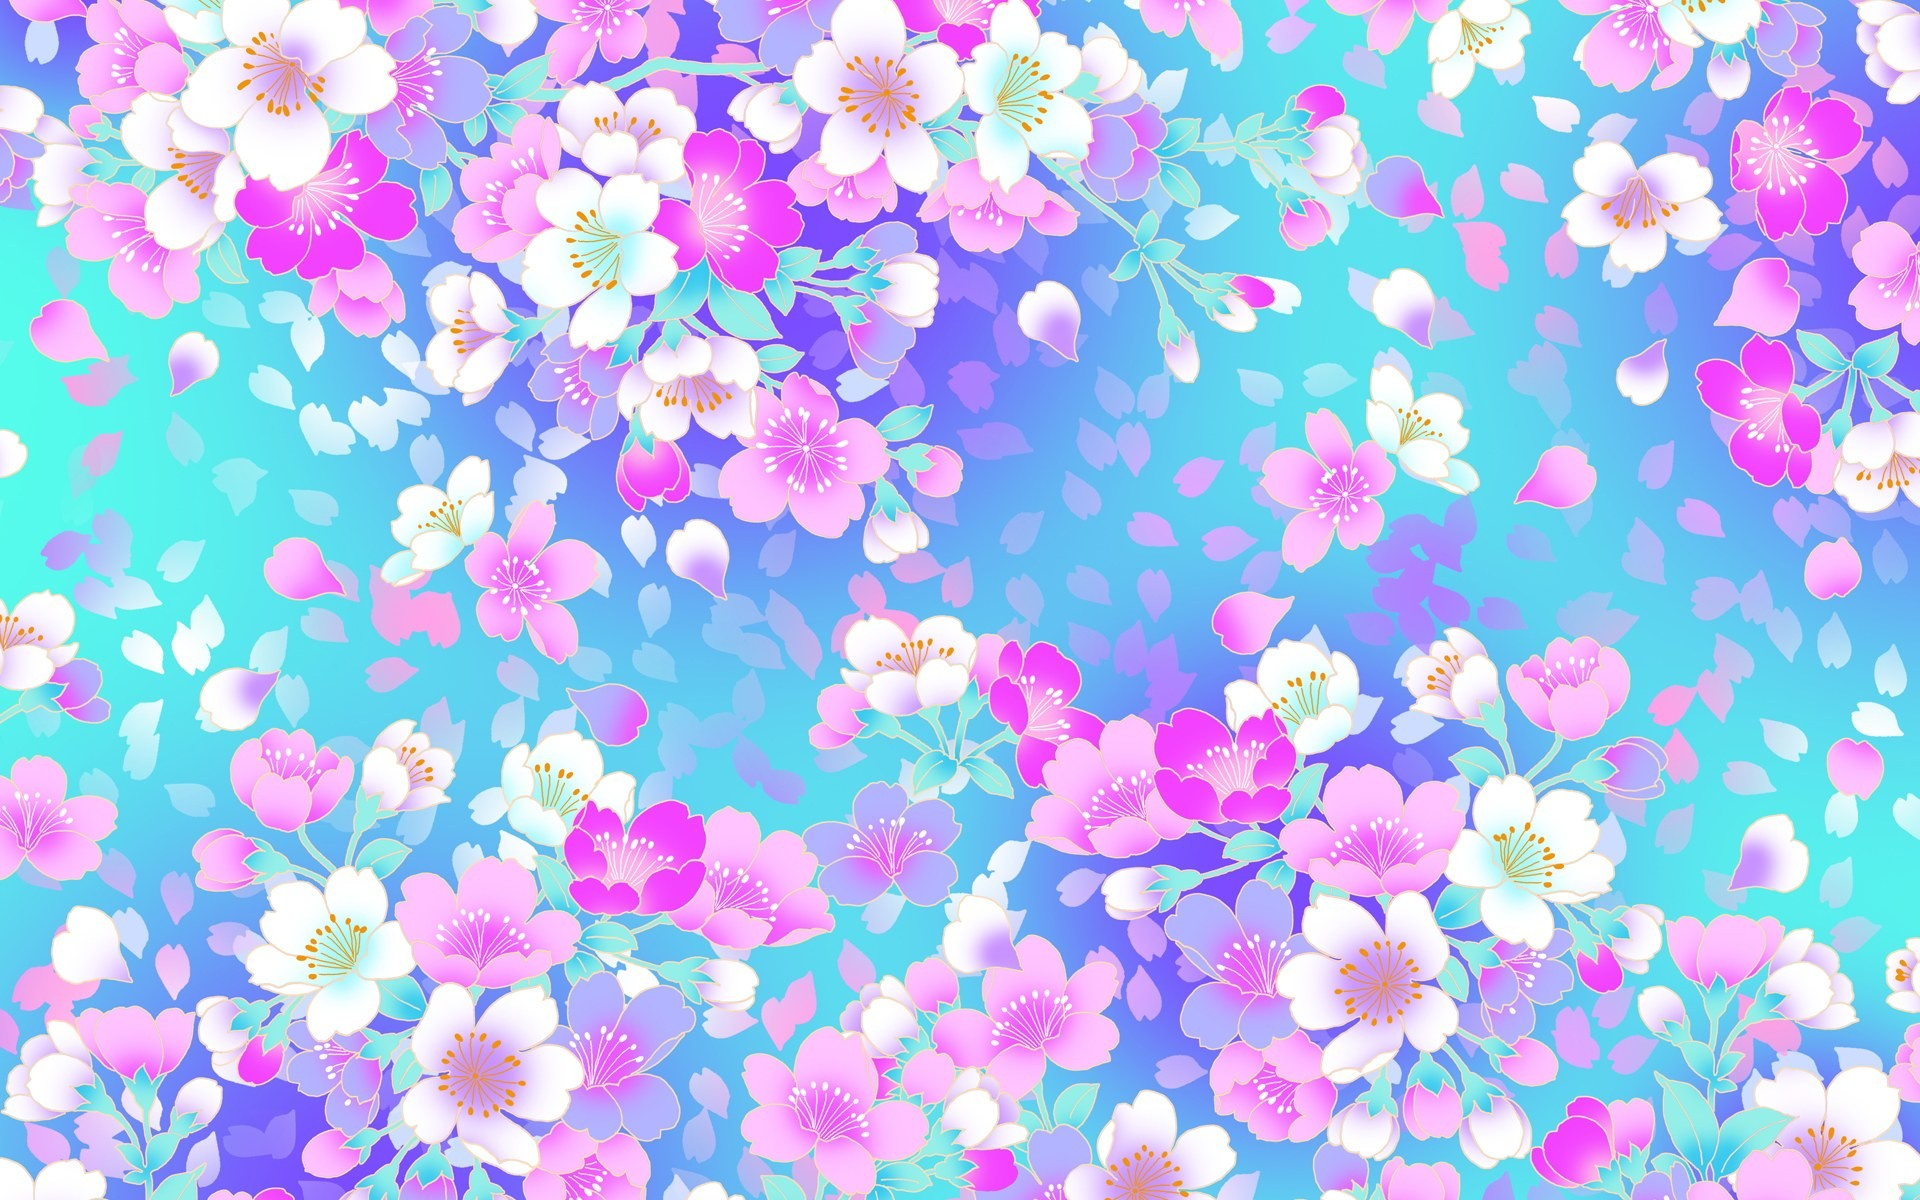 72 Girly Wallpapers Download Free Amazing High Resolution